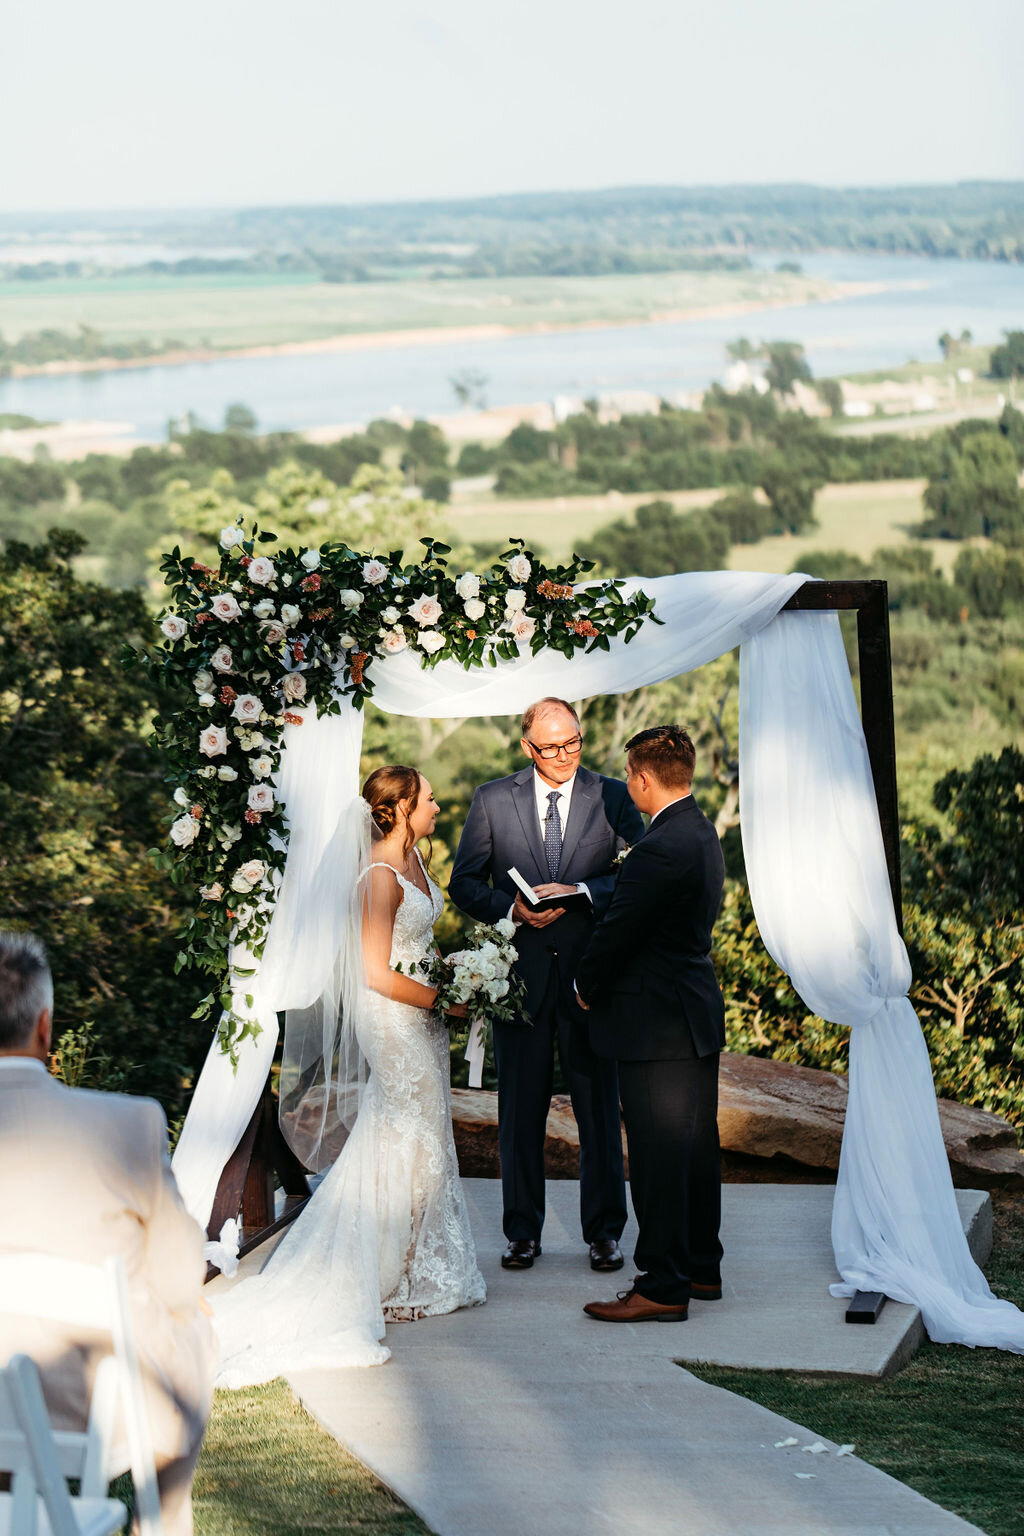 Light, Airy Tulsa White Barn Wedding Venue with a view 58.jpg